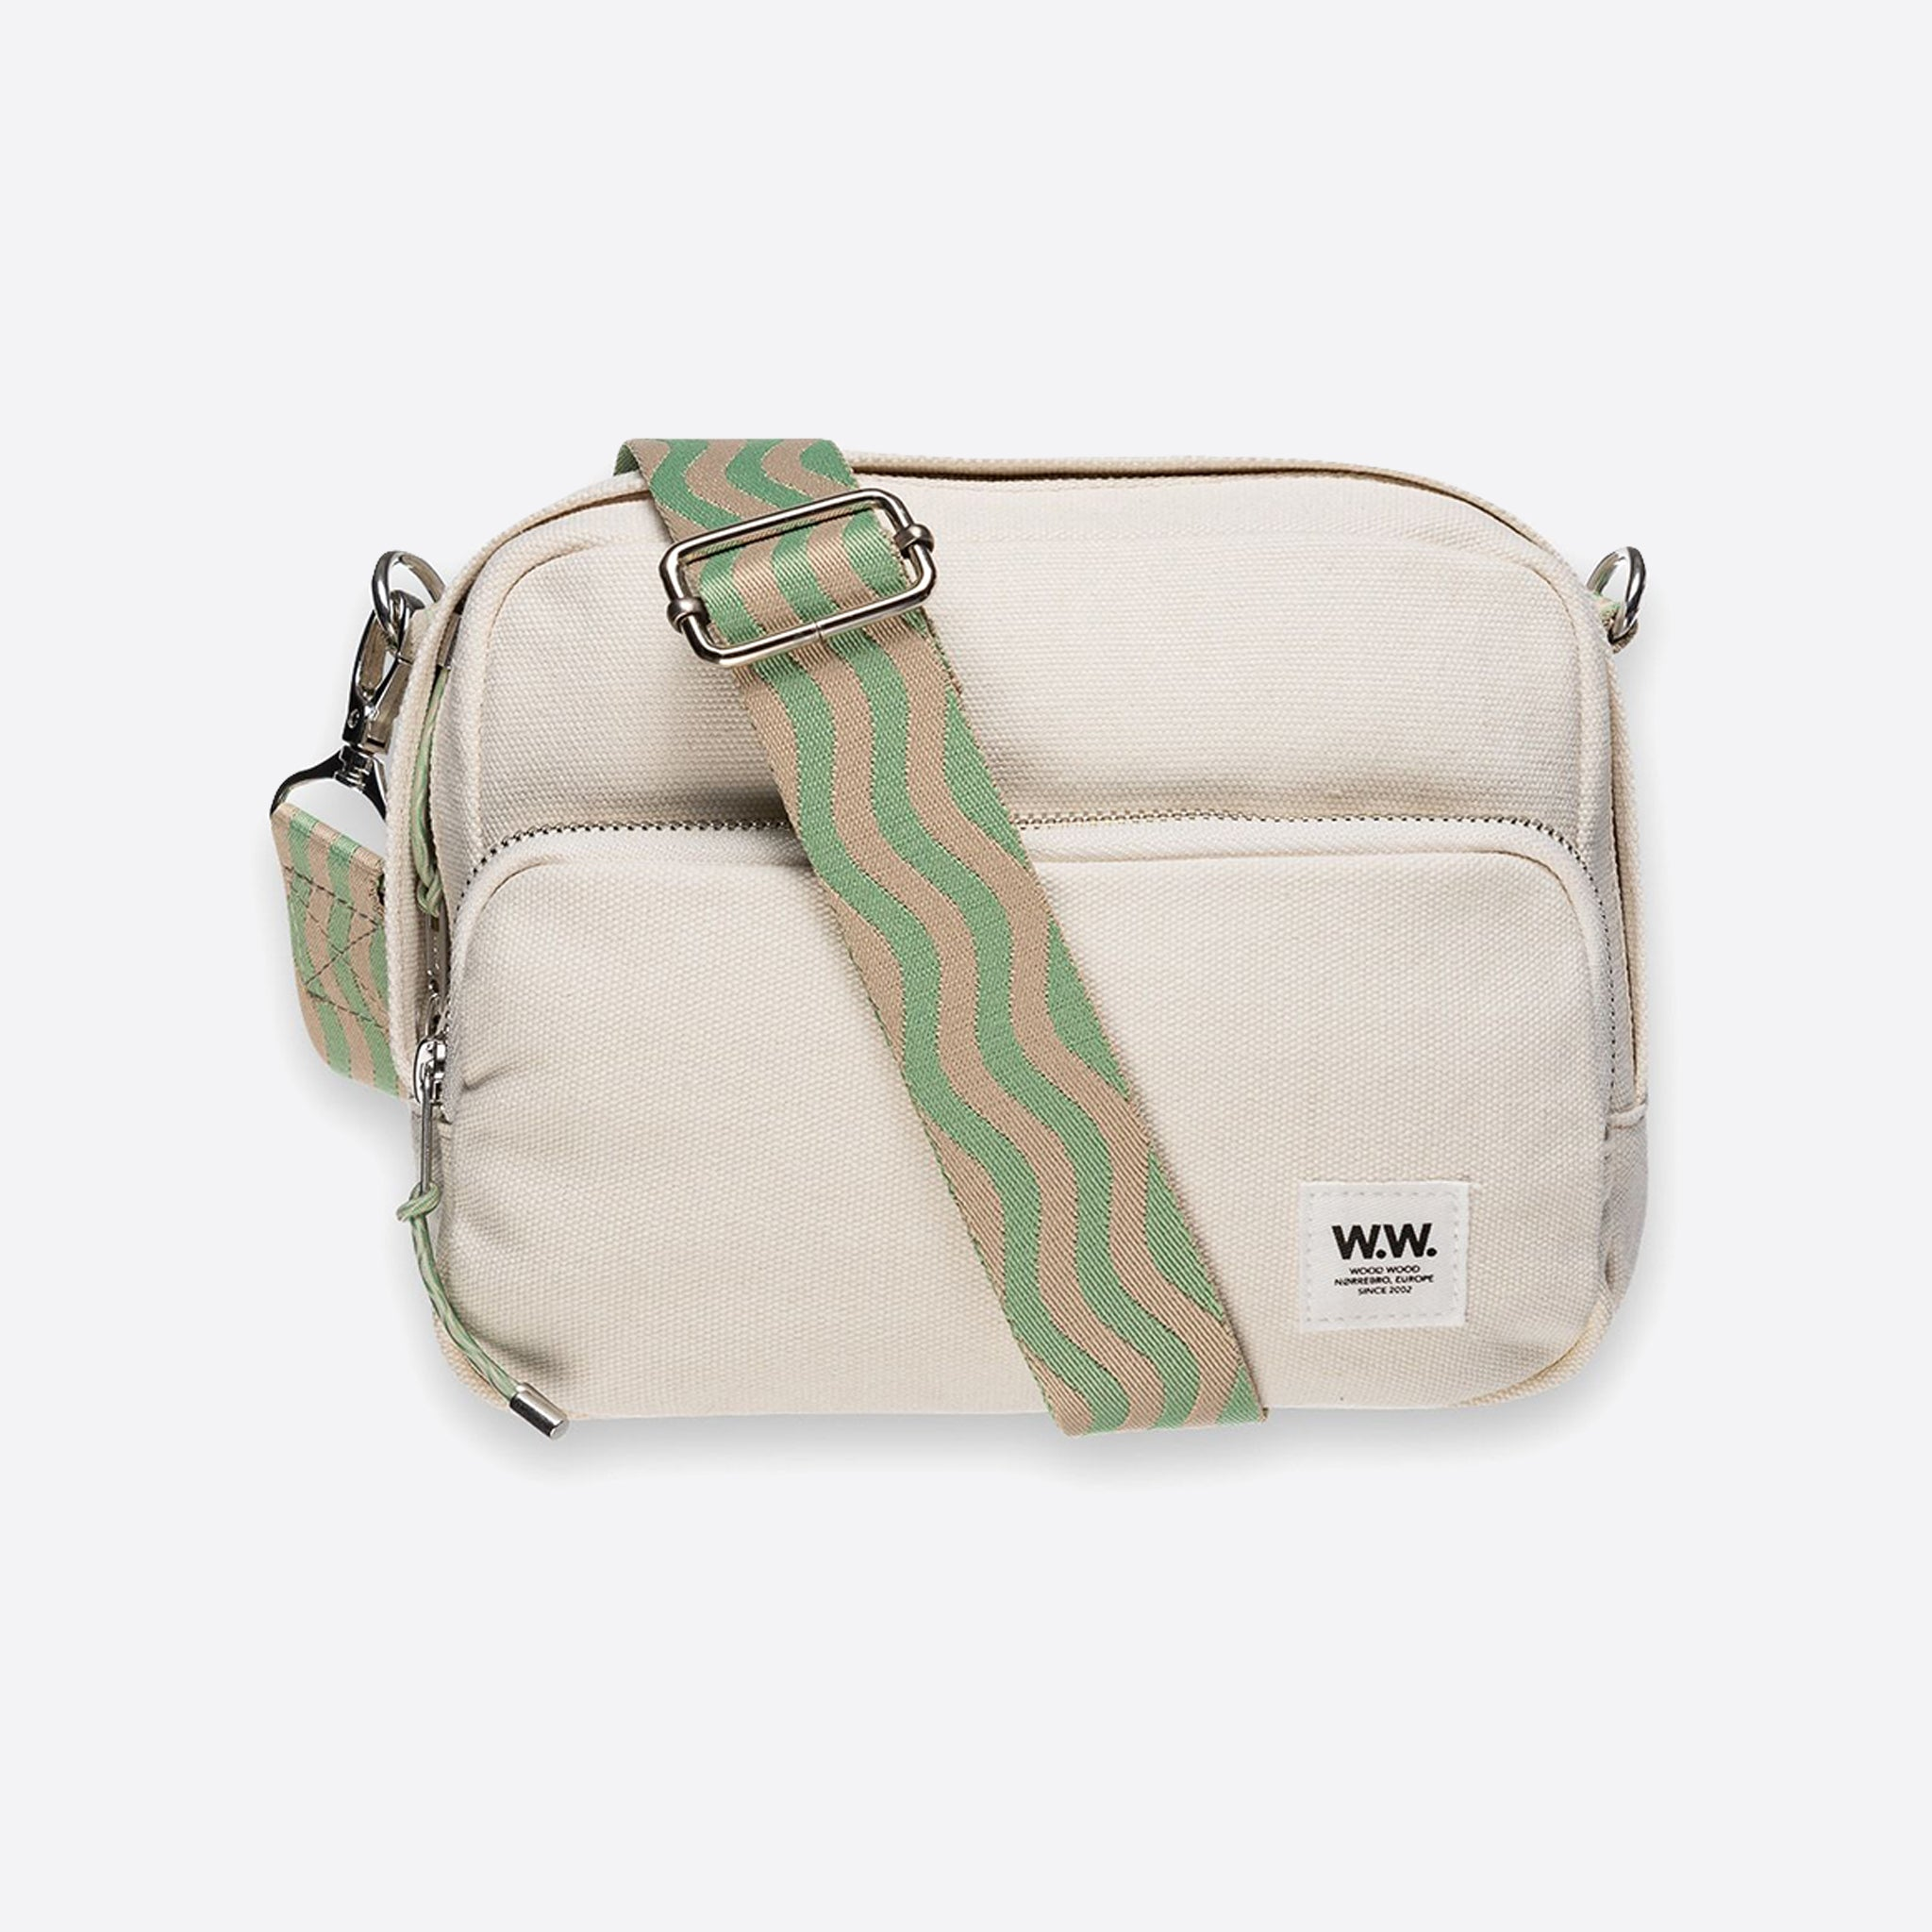 Wood Wood Marlo Shoulder Bag in Off White